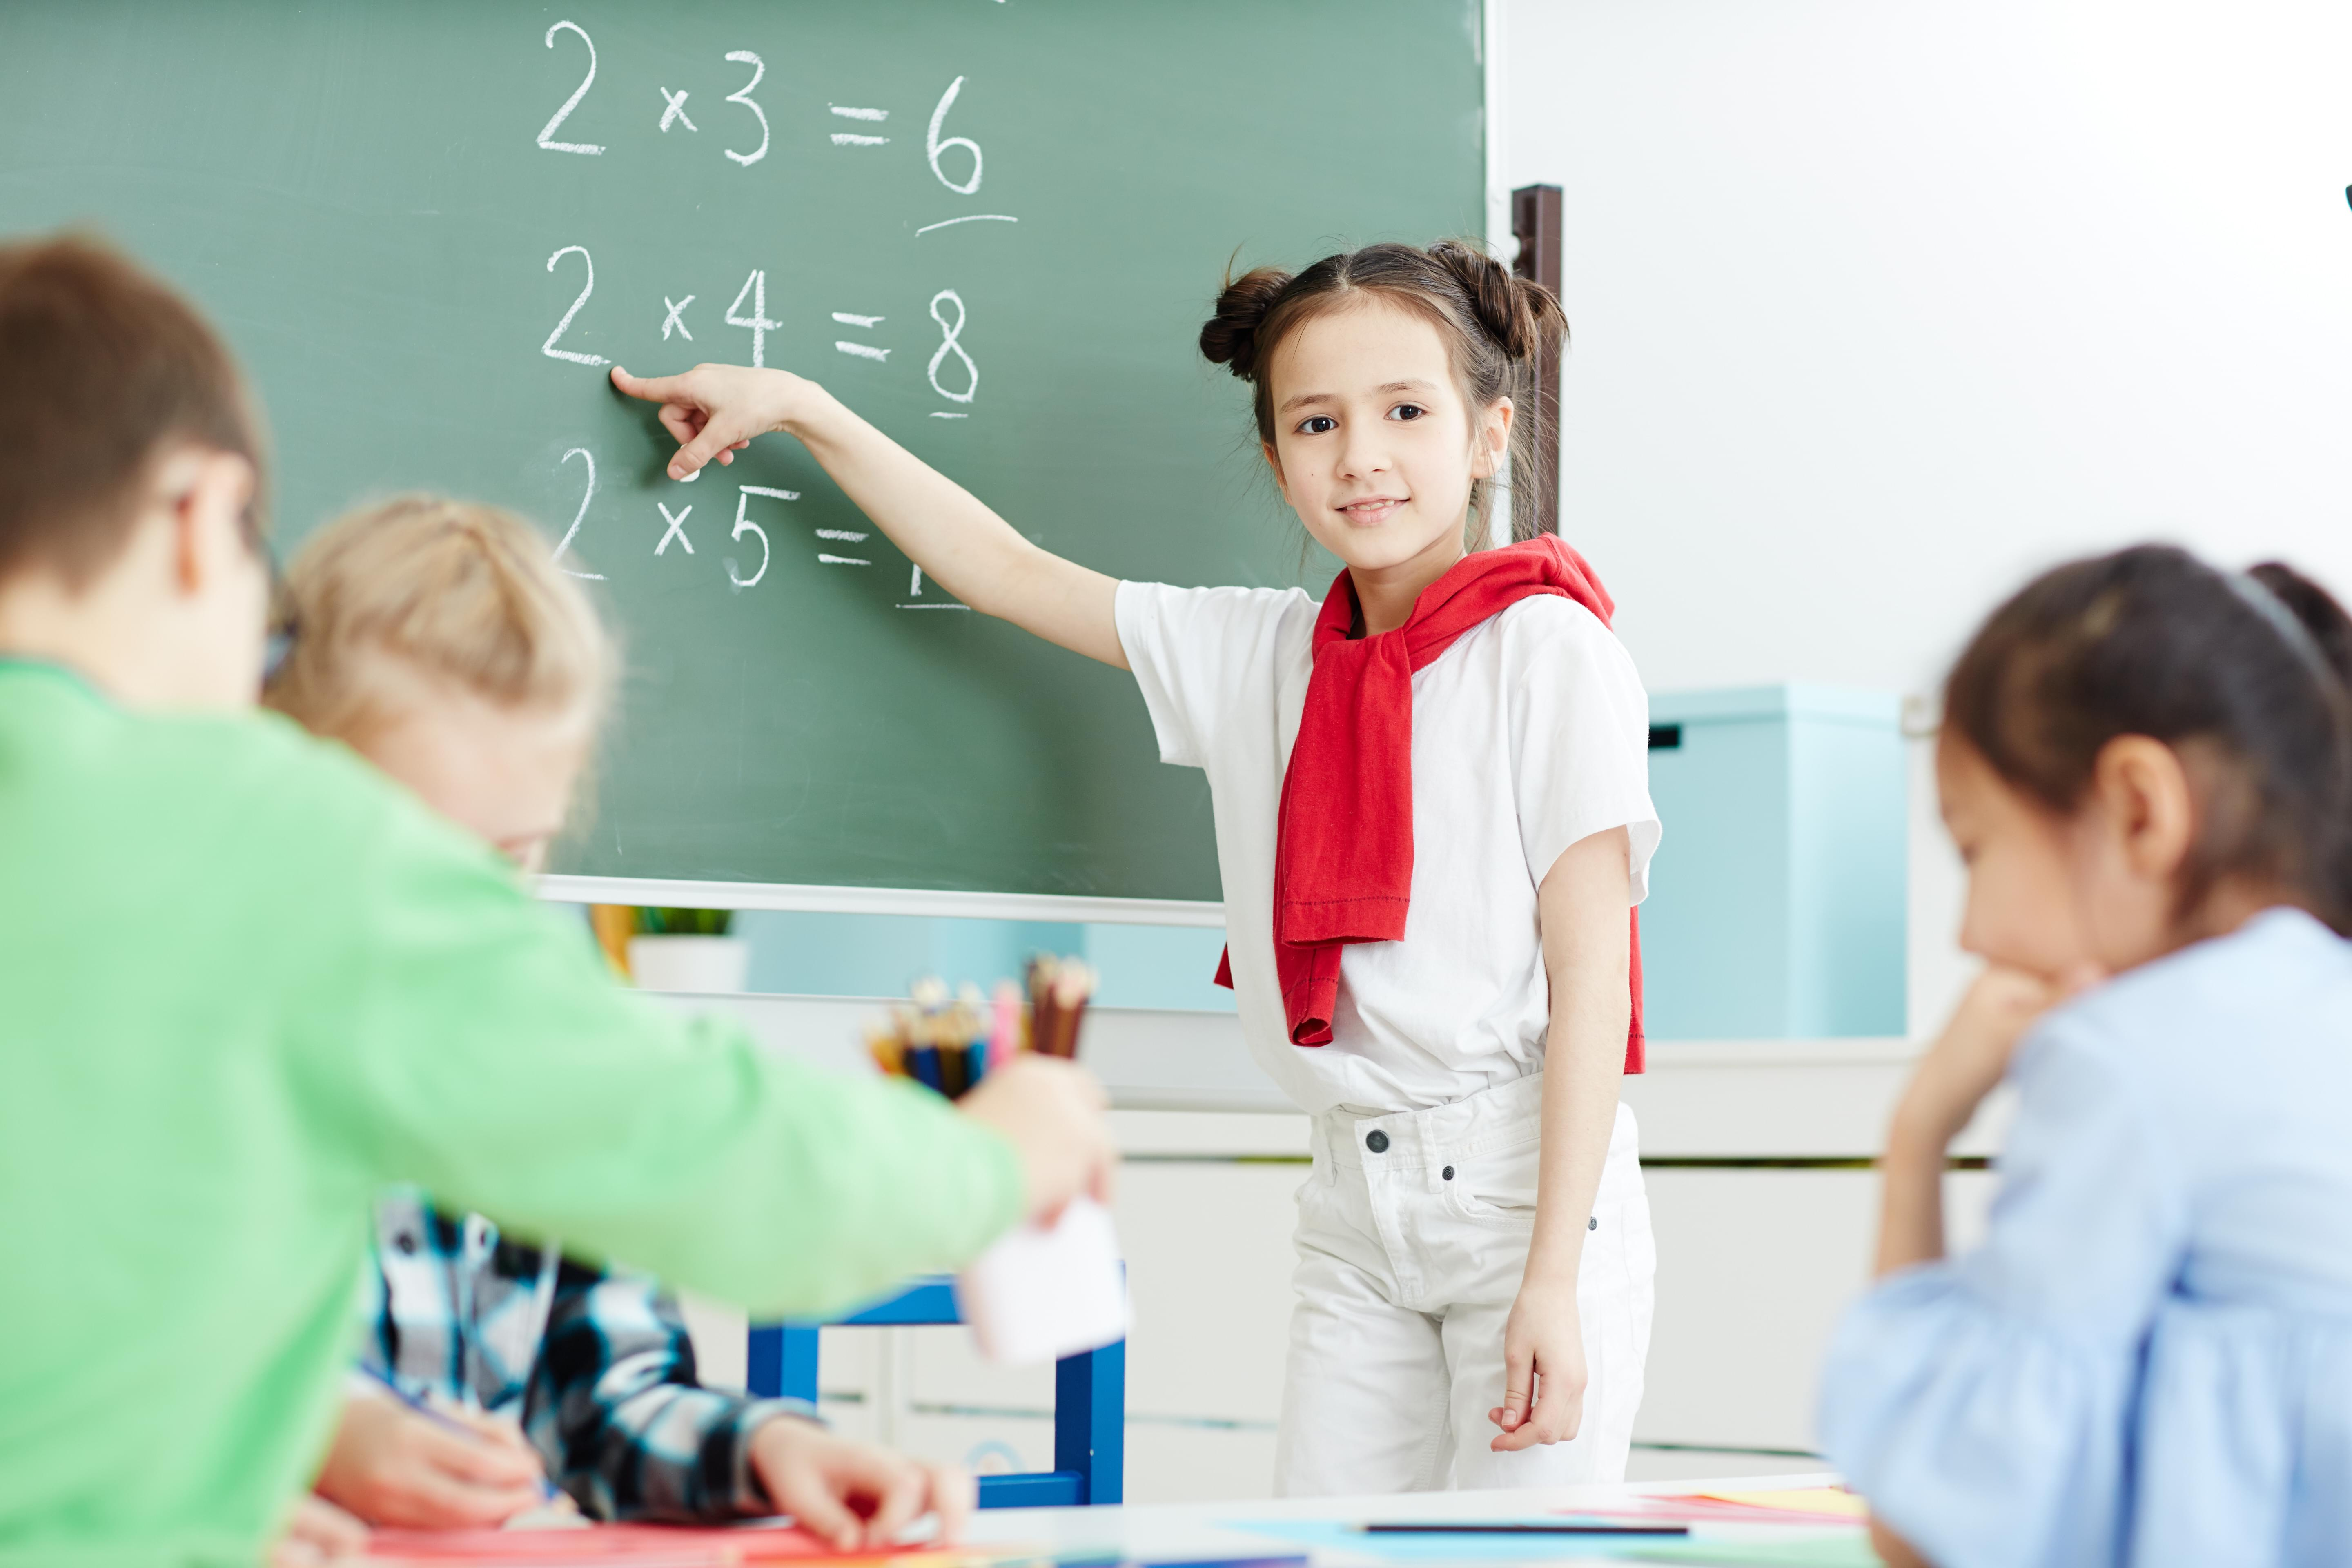 elementary school age student looking at chalk board with multiplication tables